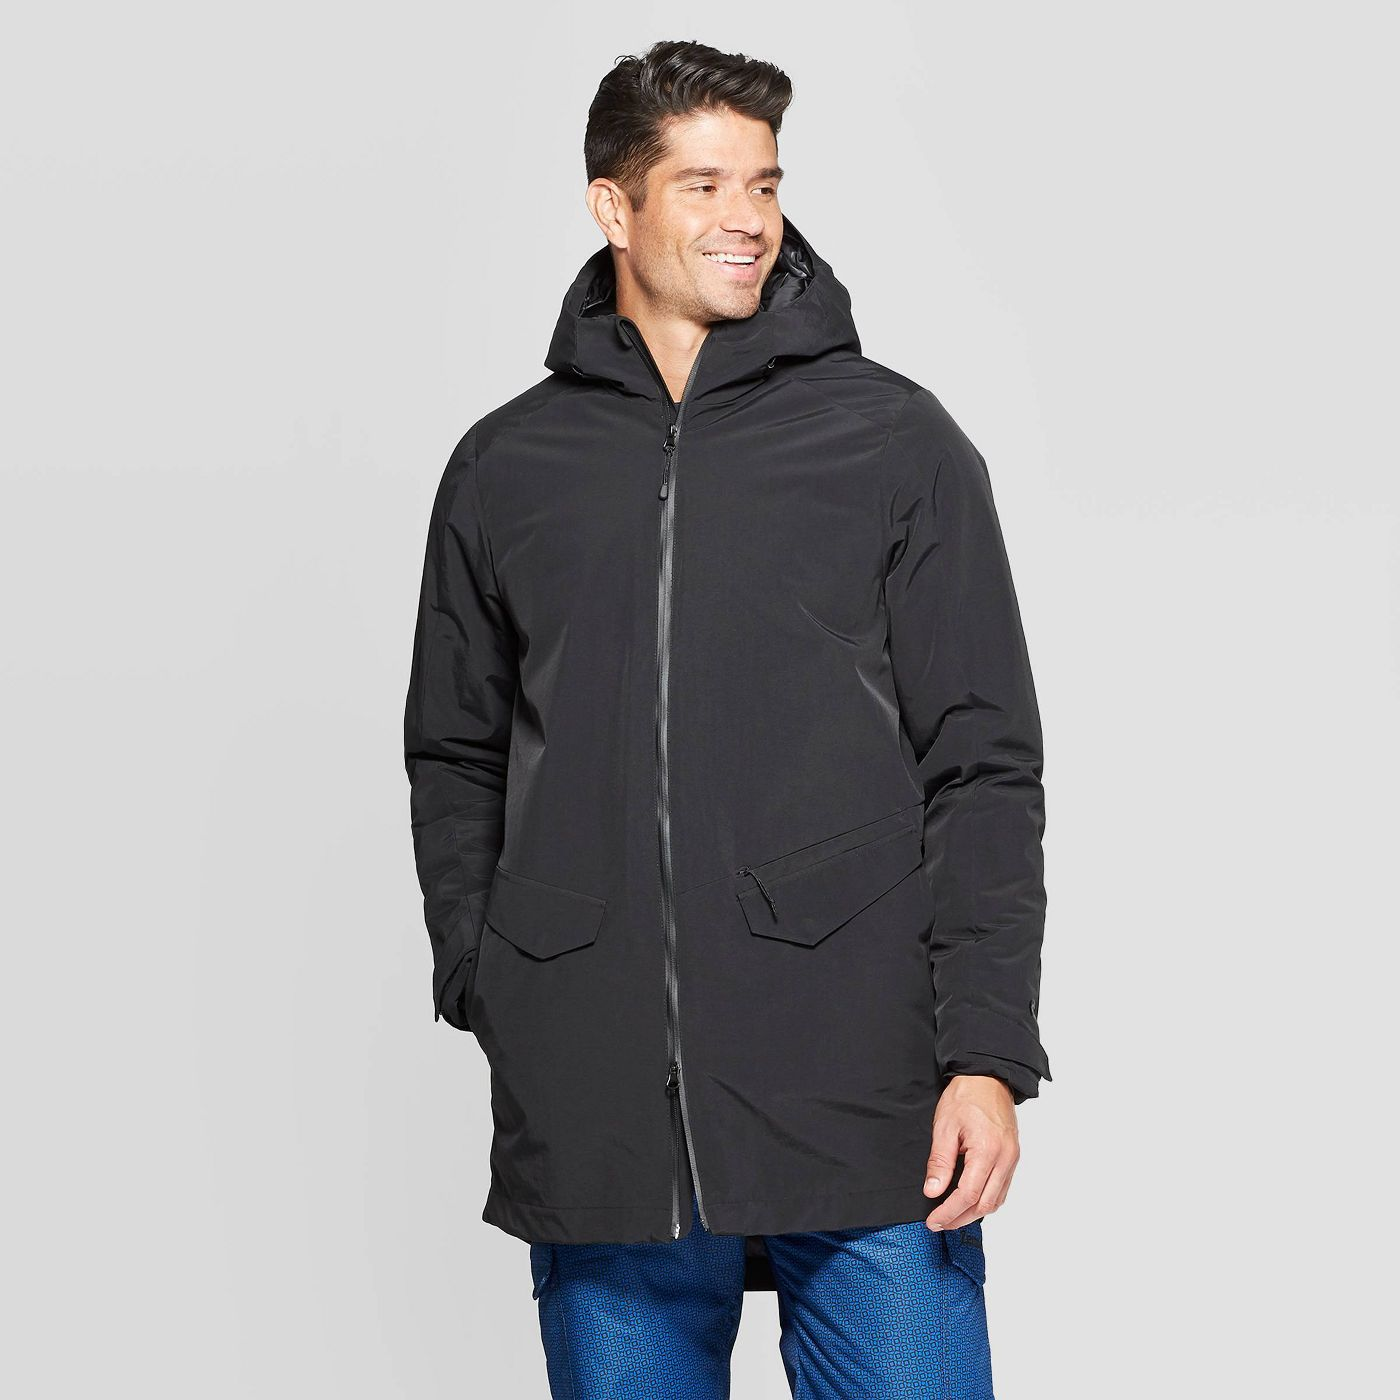 C9 Champion Men's Heavyweight Parka Jacket